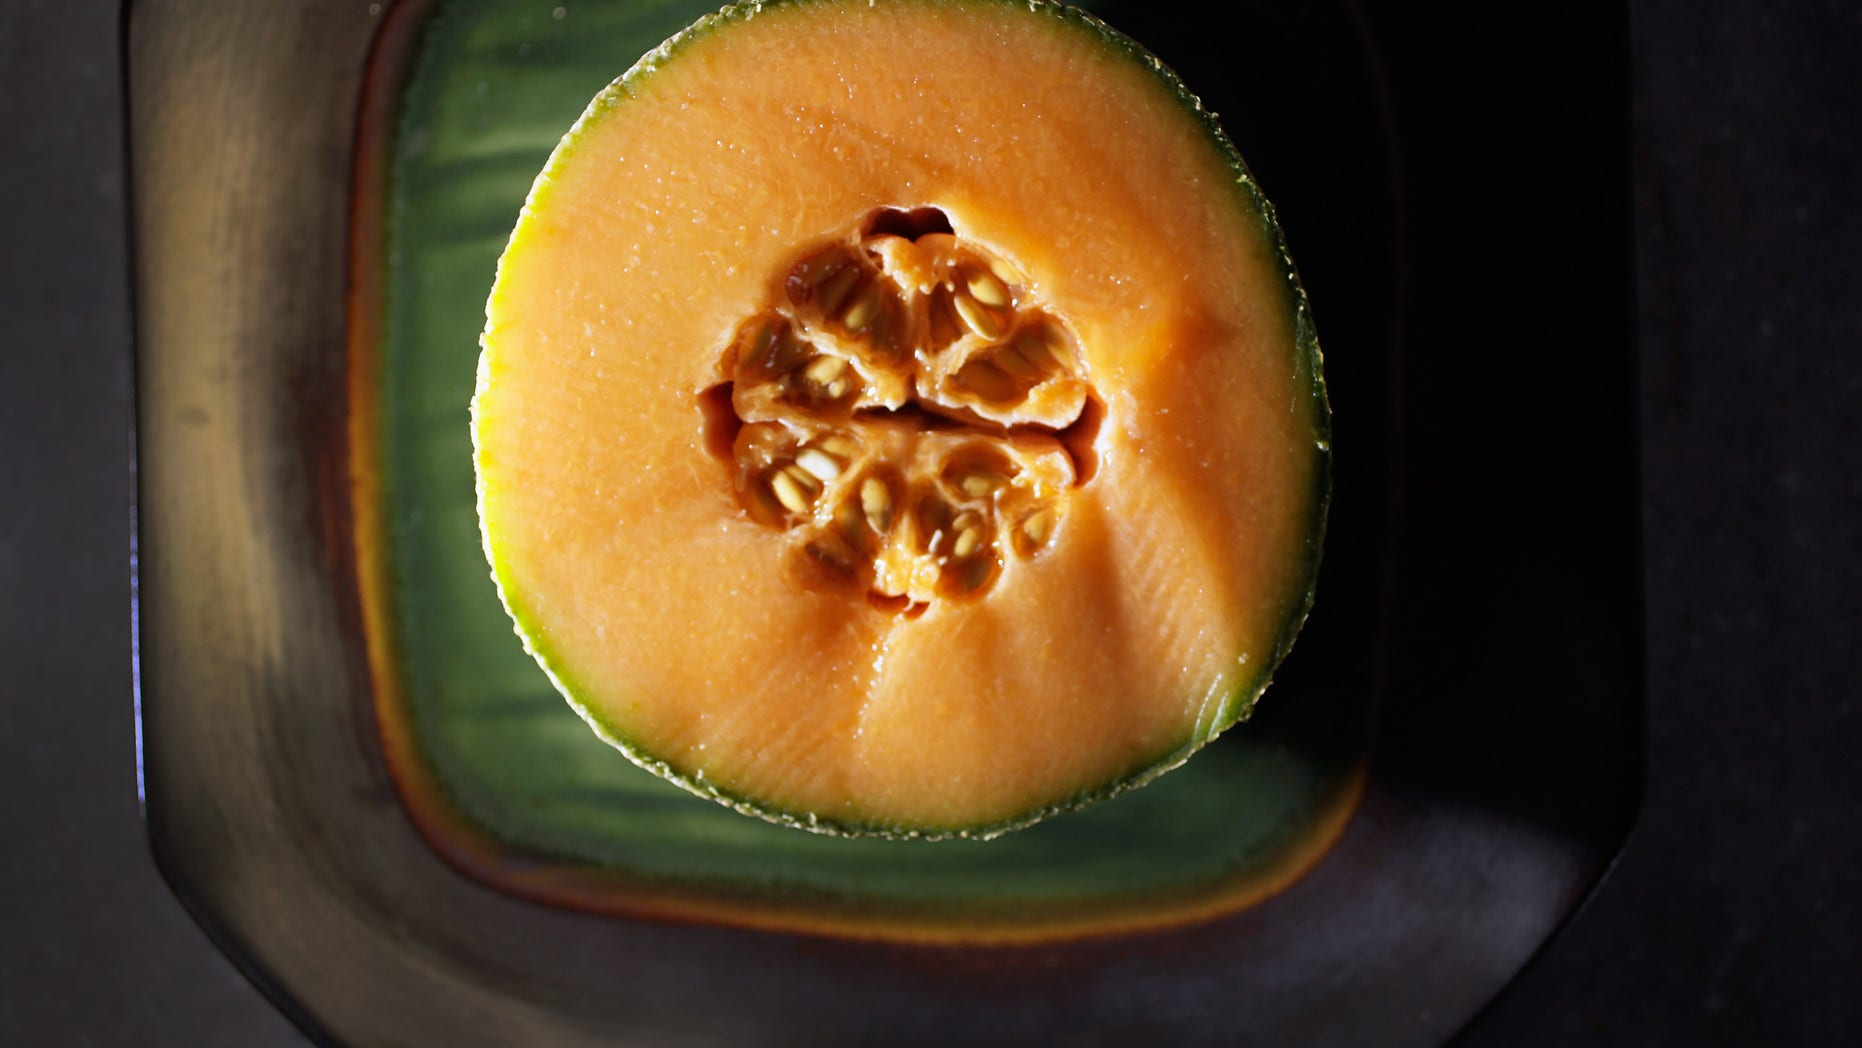 MIAMI, FL - SEPTEMBER 29:  In this photo illustration a cantaloupe is seen sliced open on September 29, 2011 in Miami, Florida. The Centers for Disease Control and Prevention reported that cantaloupe from Jensen Farms of Holly, Colorado have the bacterium listeria and so far, the outbreak has sickened more than 70 people, and killed up to 16, in 18 states.  (Photo Illustration by Joe Raedle/Getty Images)